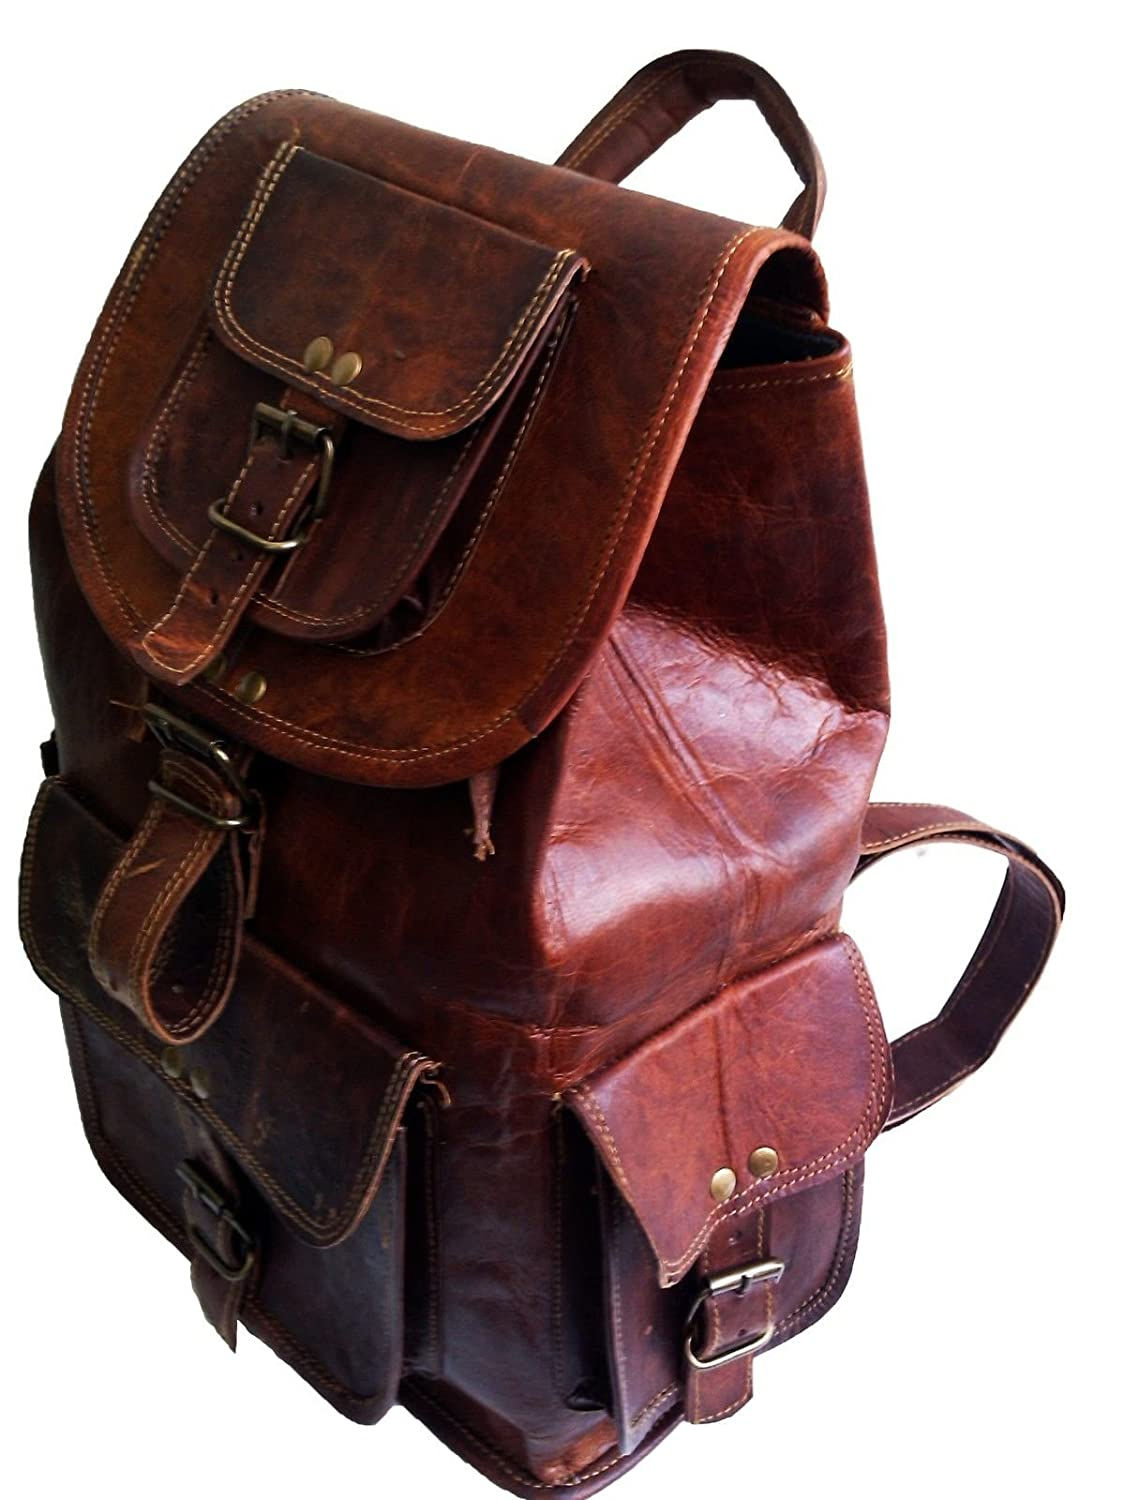 Amazon 16 Genuine Leather Retro Rucksack Backpack College Bagschool Picnic Bag Travel Sports Outdoors